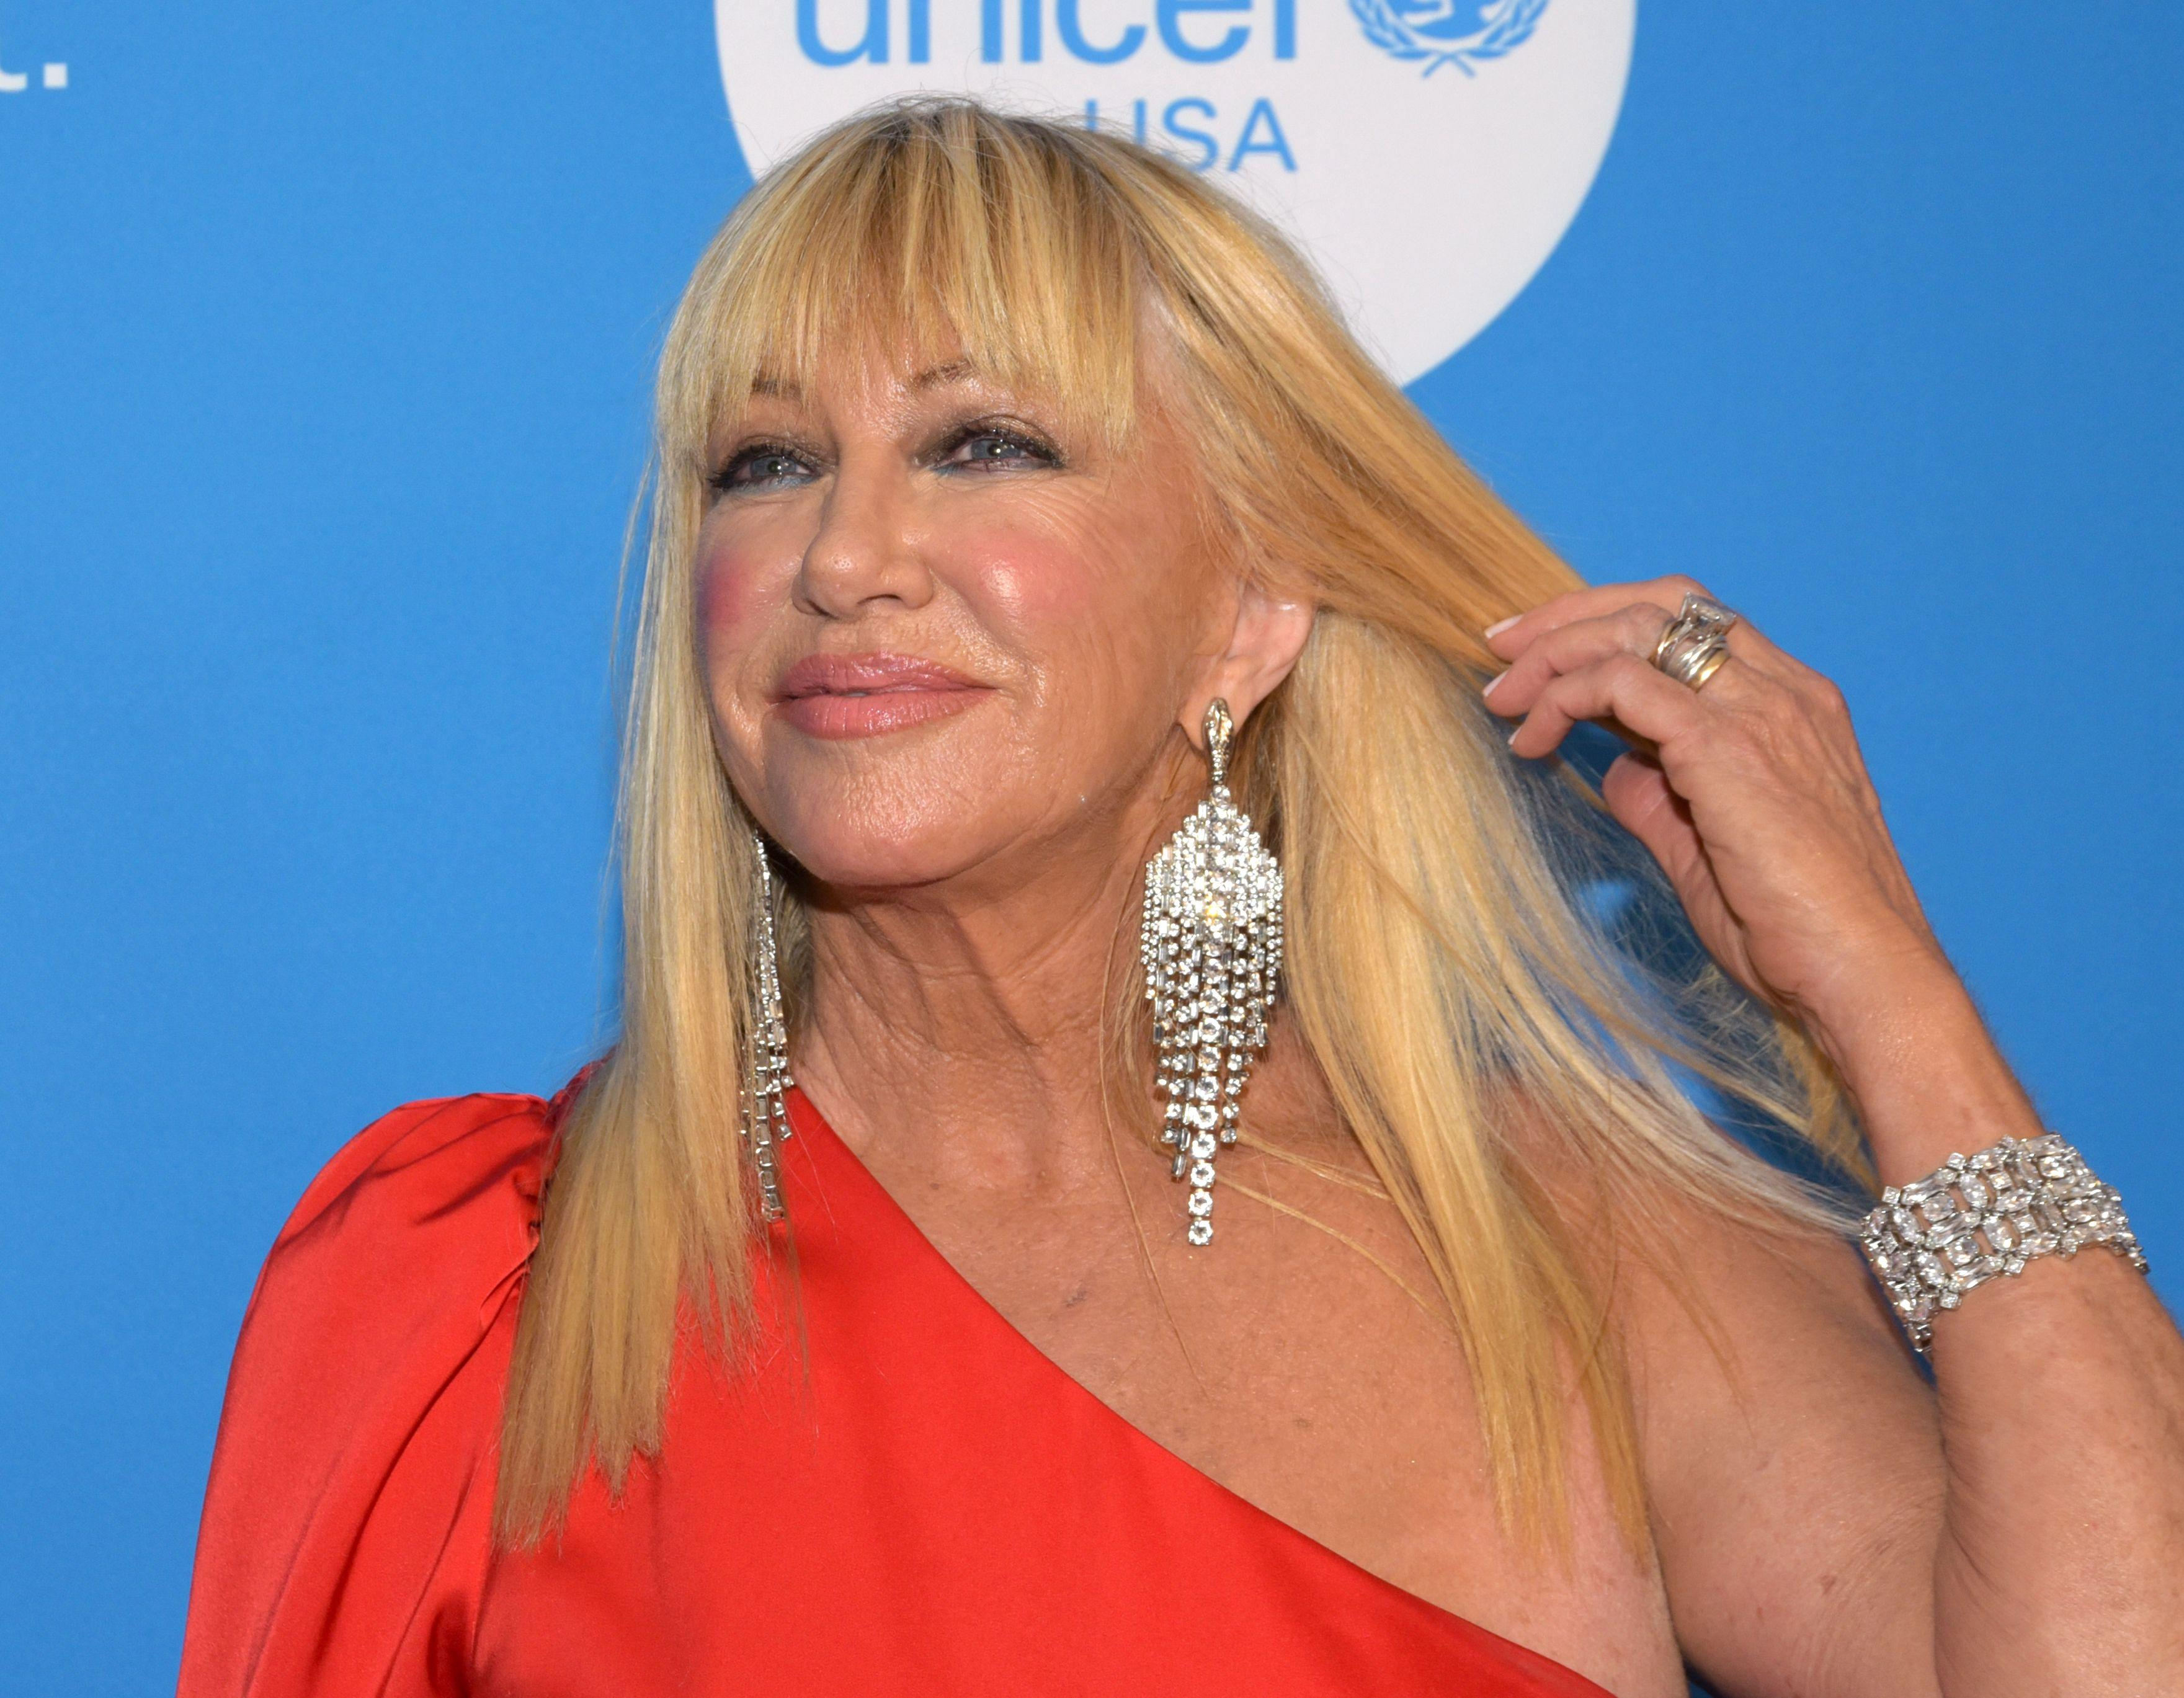 Amy Schumer Nua suzanne somers, 73, told to 'show some class' after baring all in 'birthday suit' photo